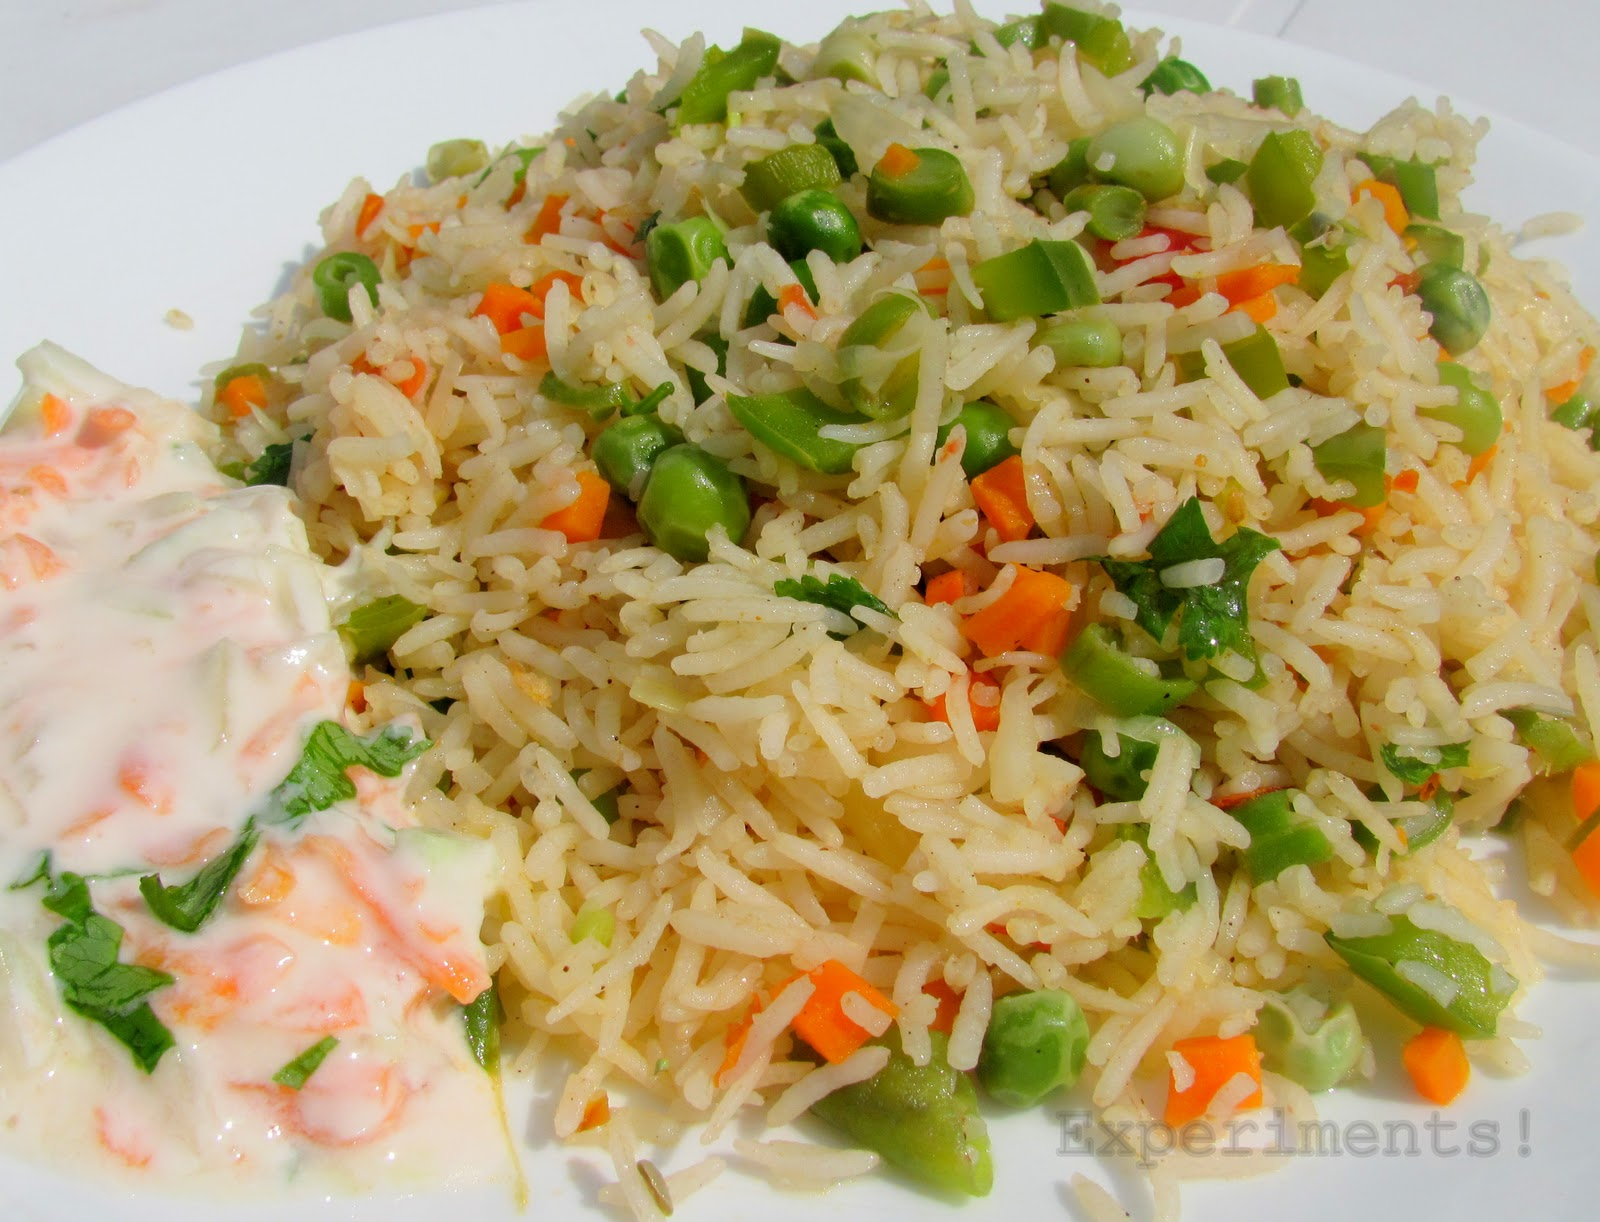 Flavours: Magic Vegetable Fried Rice